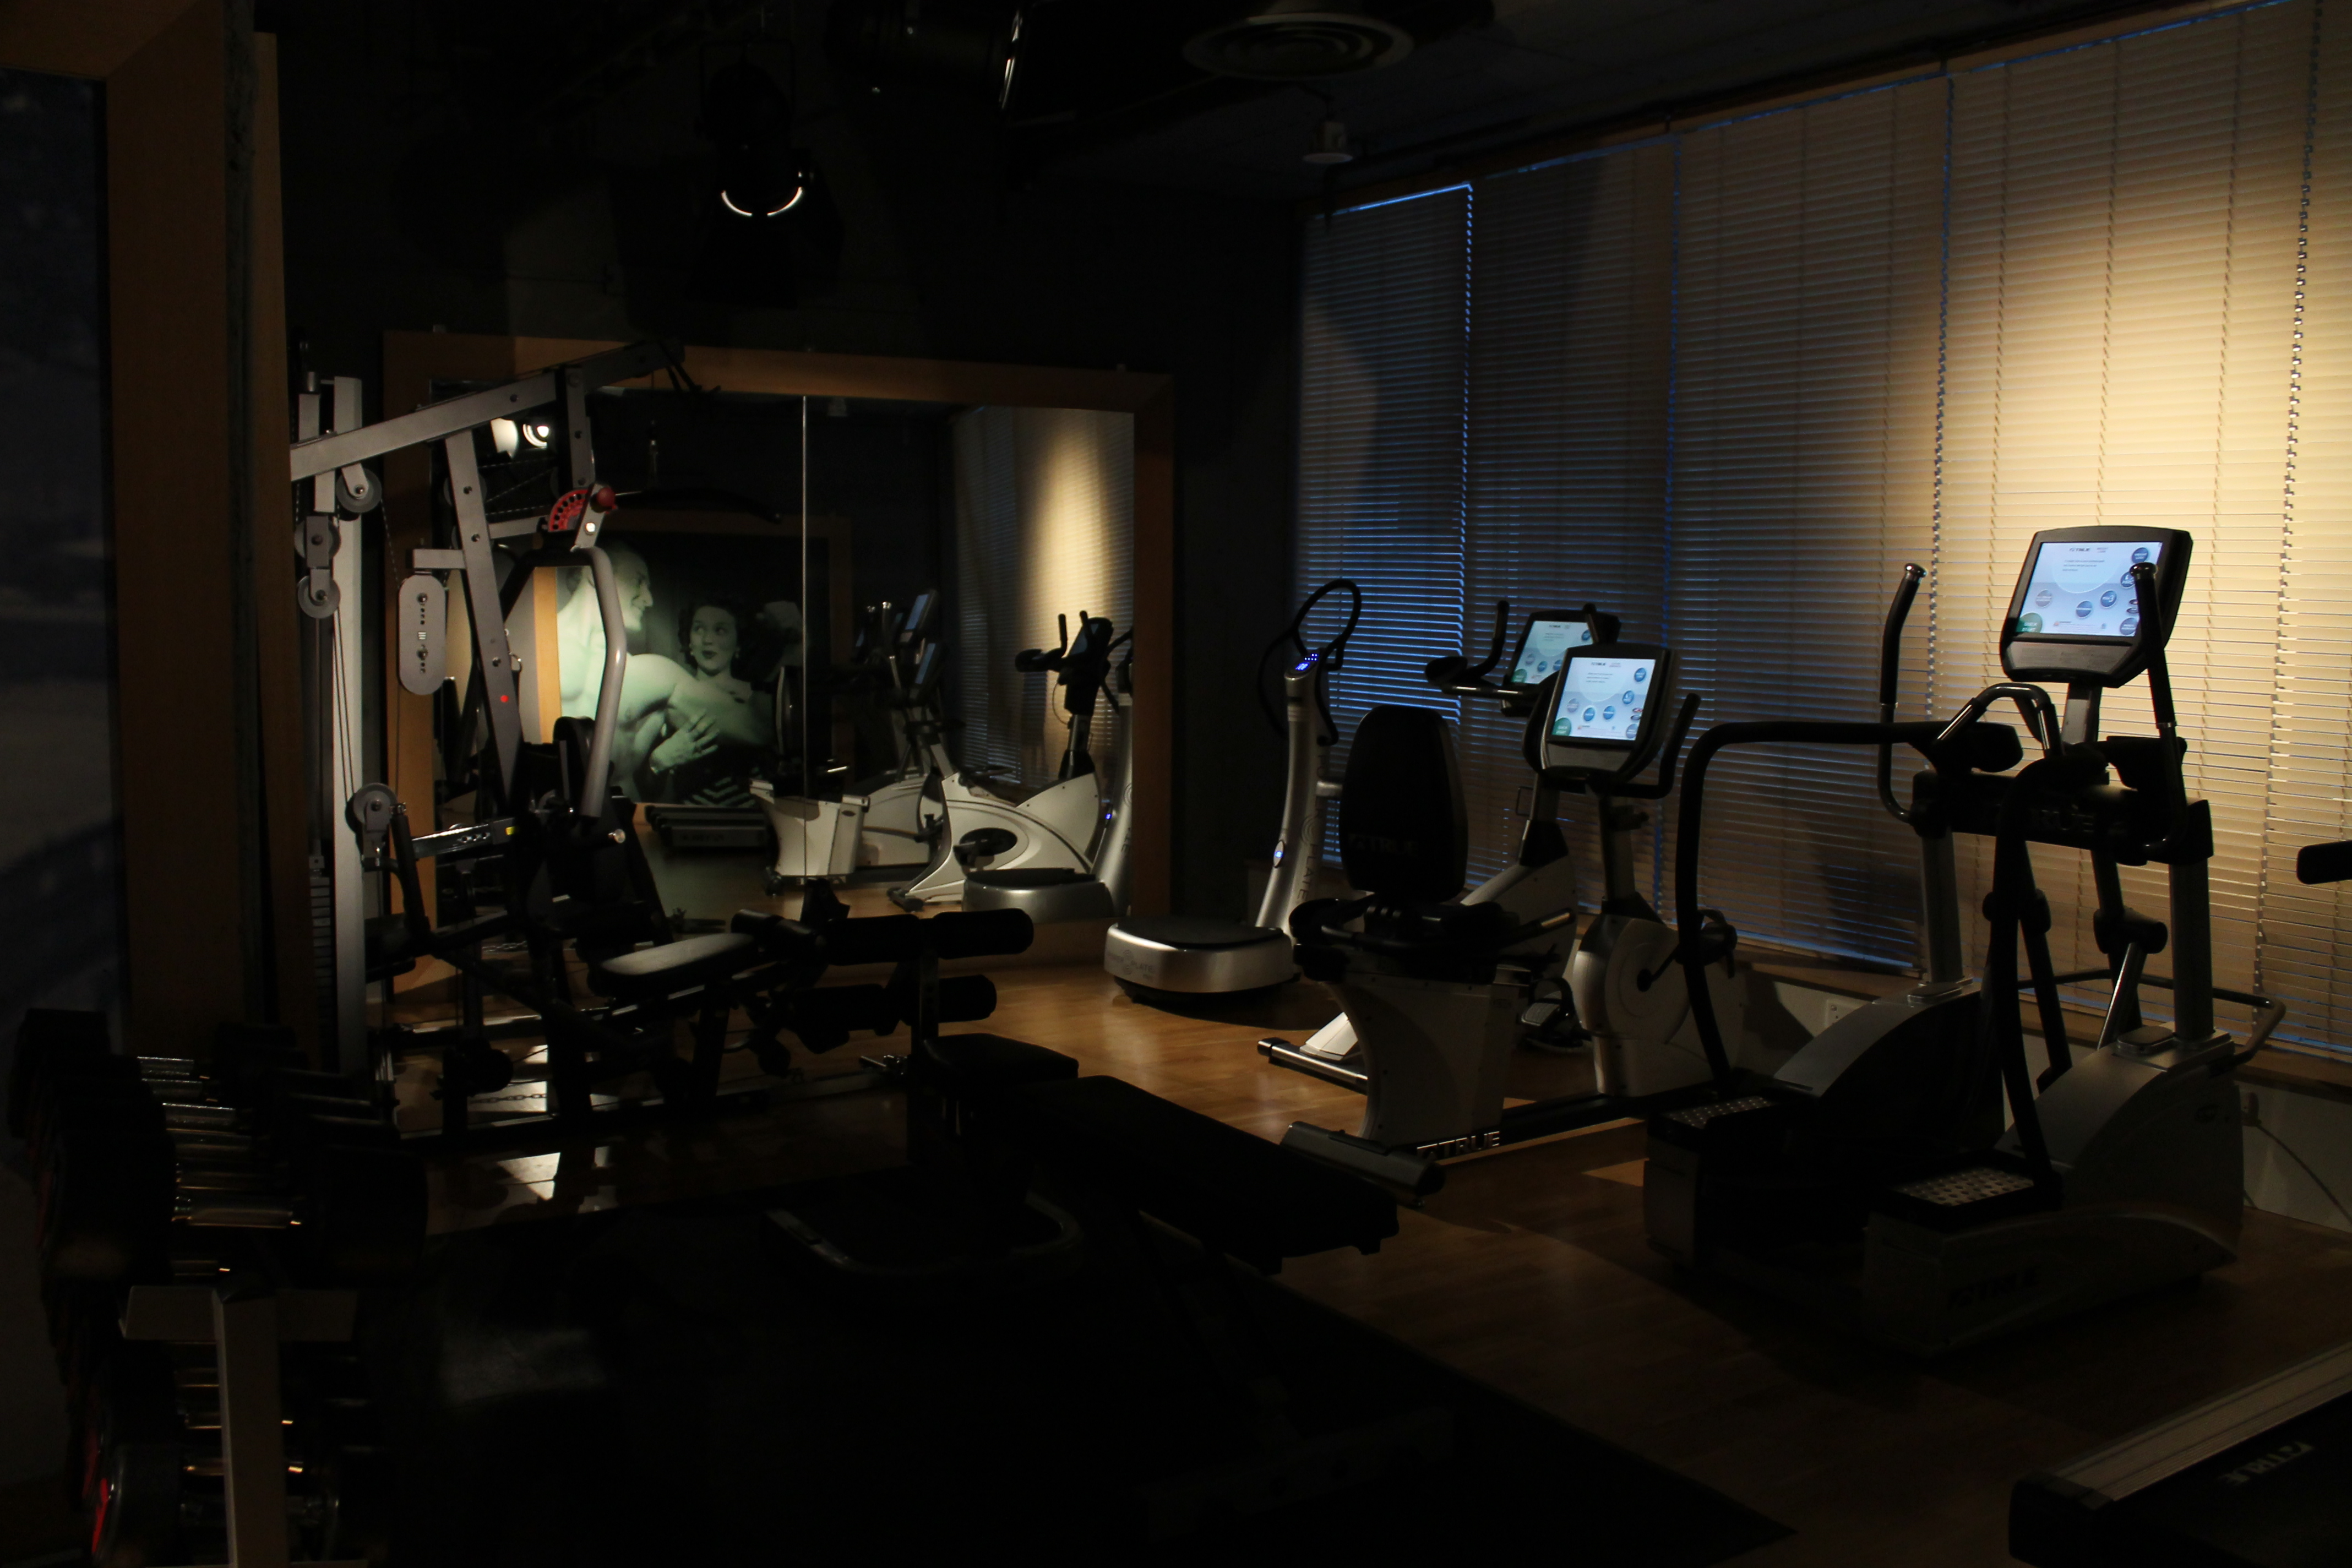 10 – Gym room at Madera Residencies